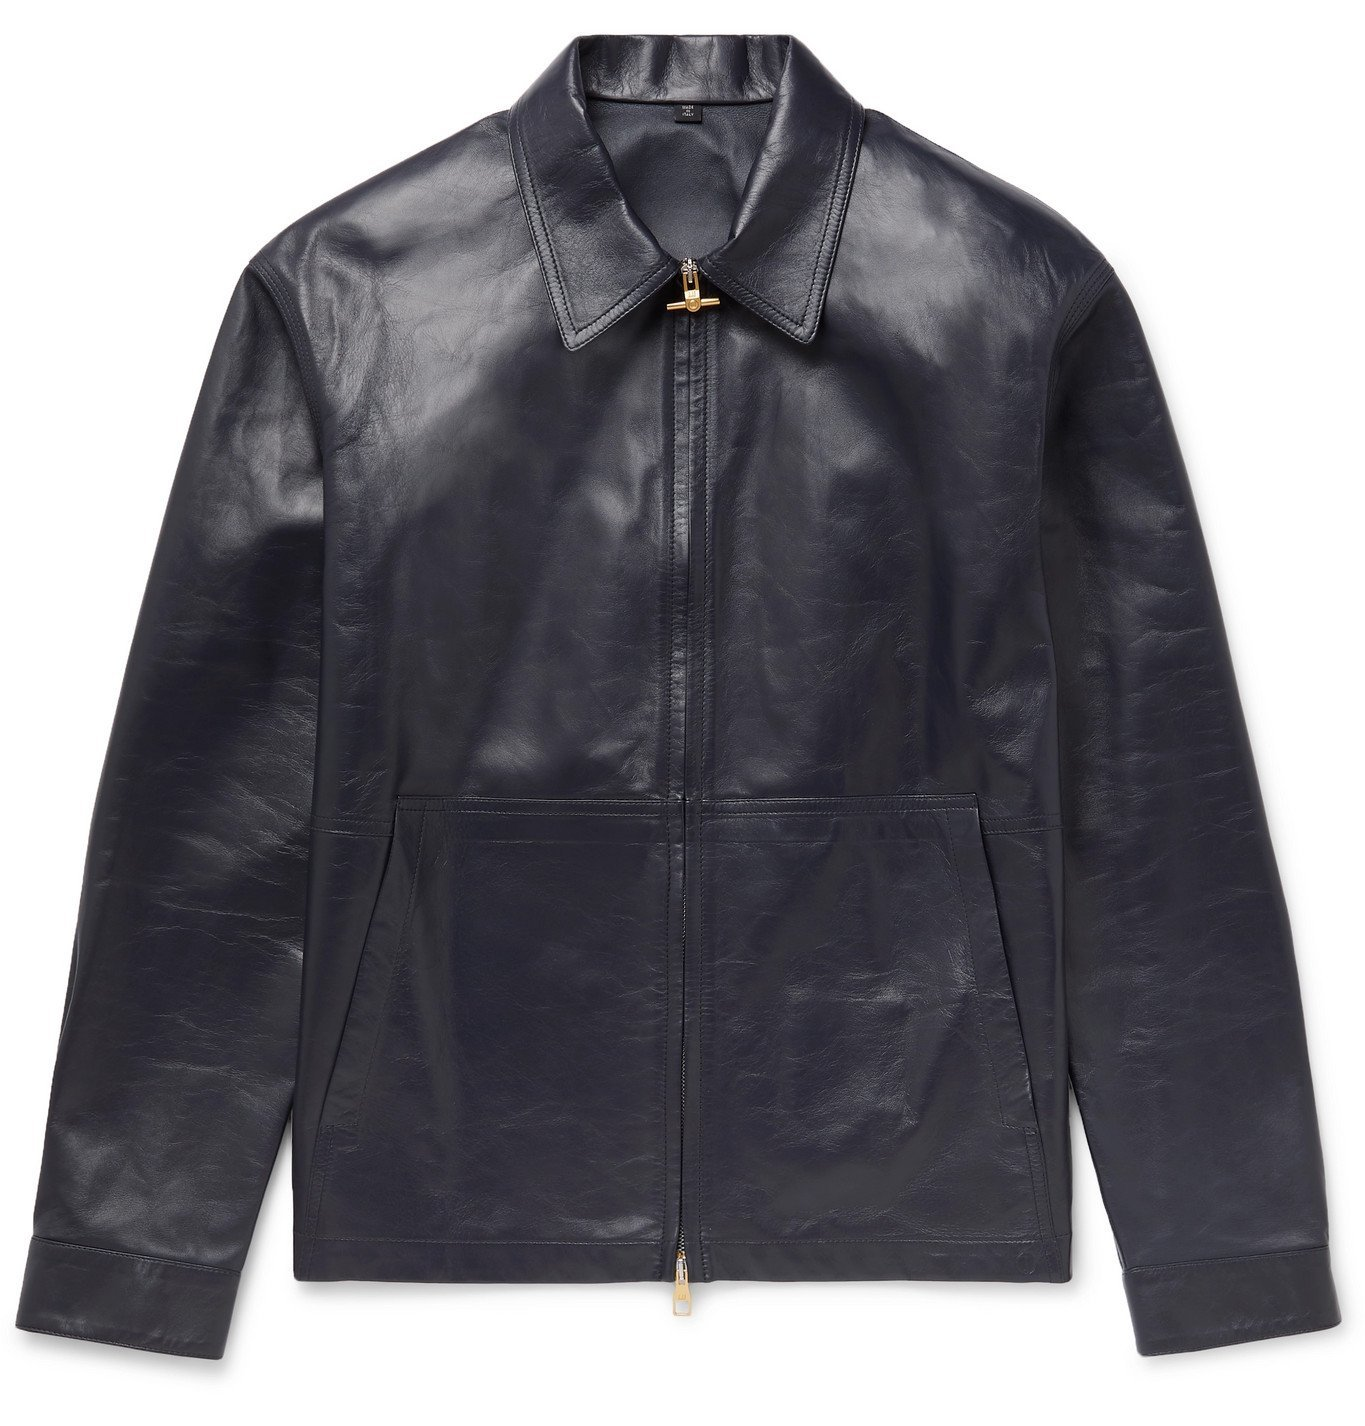 DUNHILL - Leather Jacket - Blue